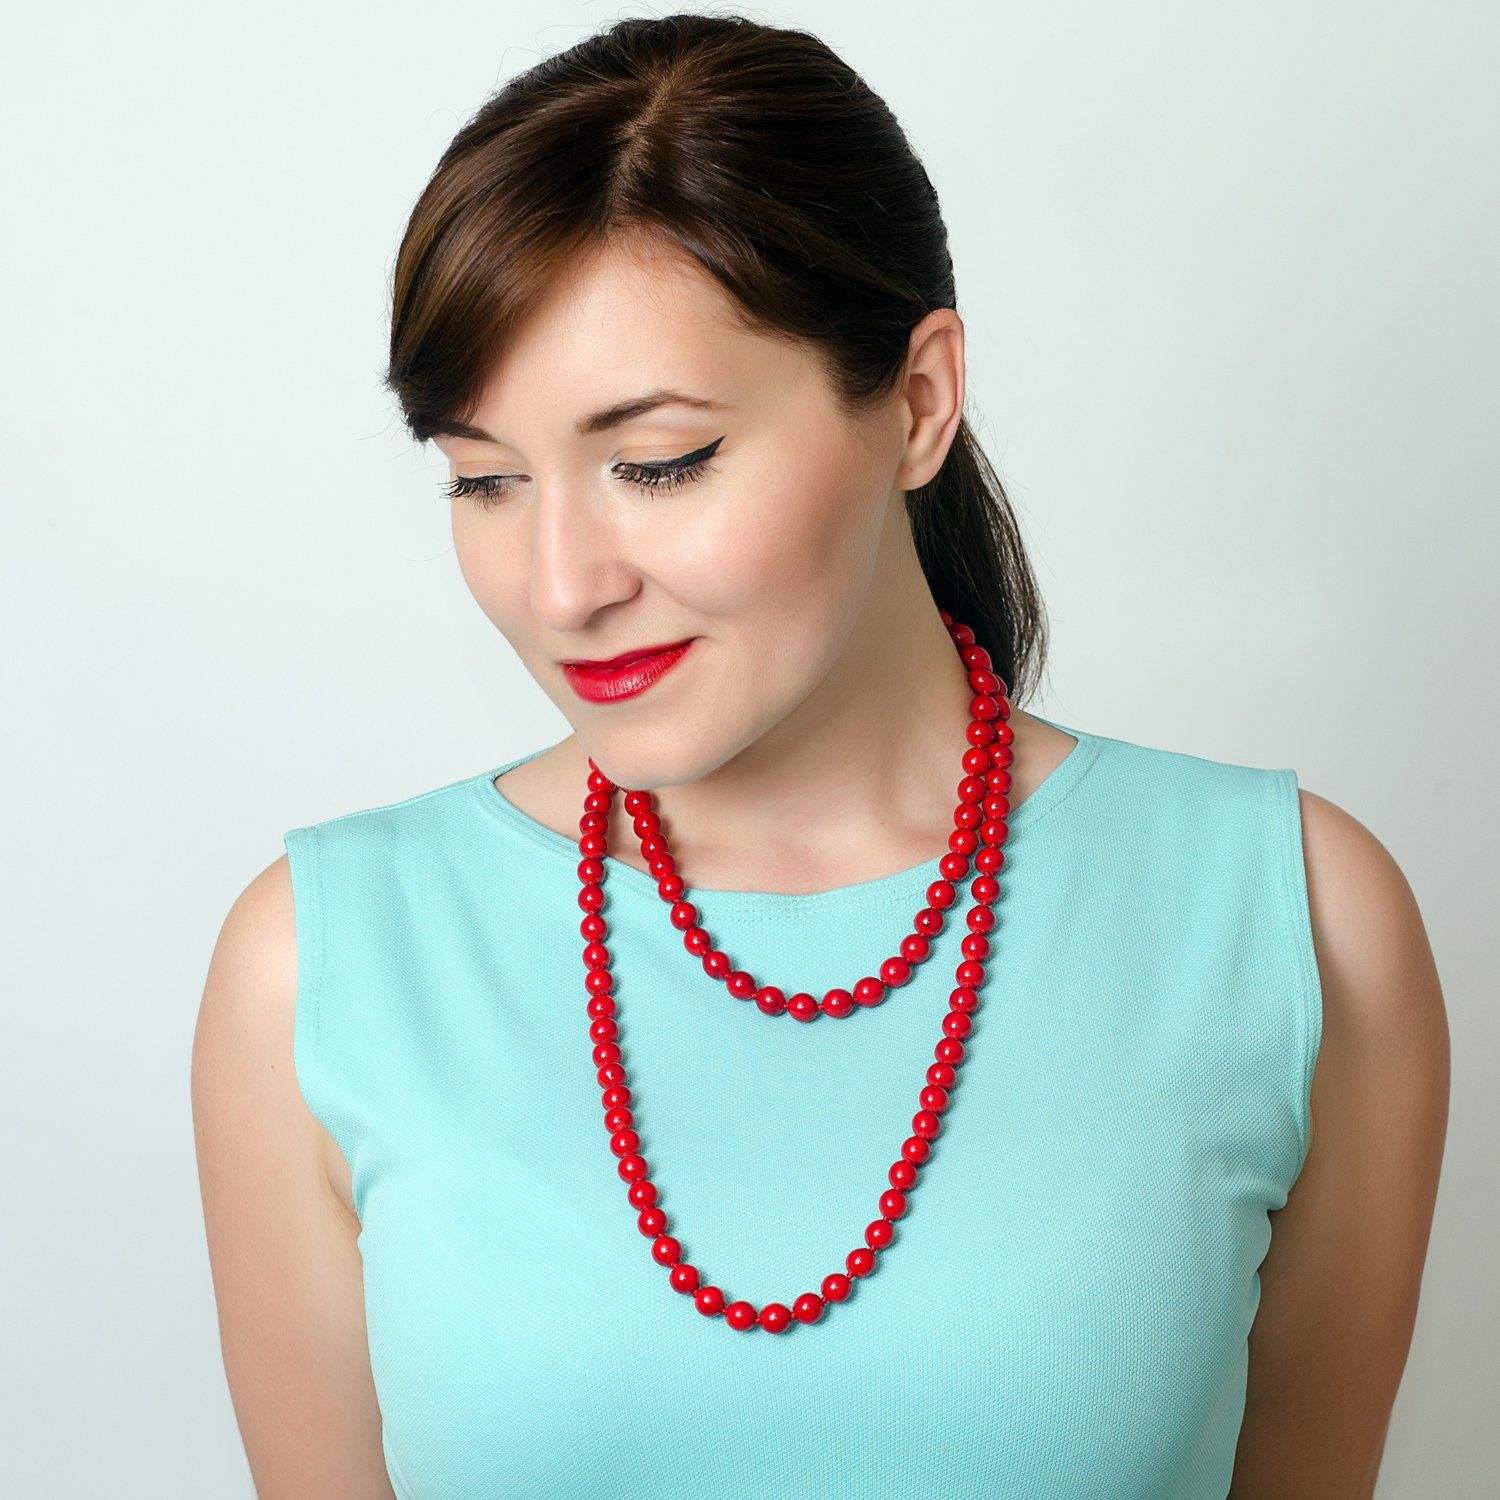 1950s Jewelry Styles and History Jane Stone Statement Turquoise Bib Round Short Bead Red Double Strand Long Necklace Jewelry for Women Teen Girls $13.99 AT vintagedancer.com